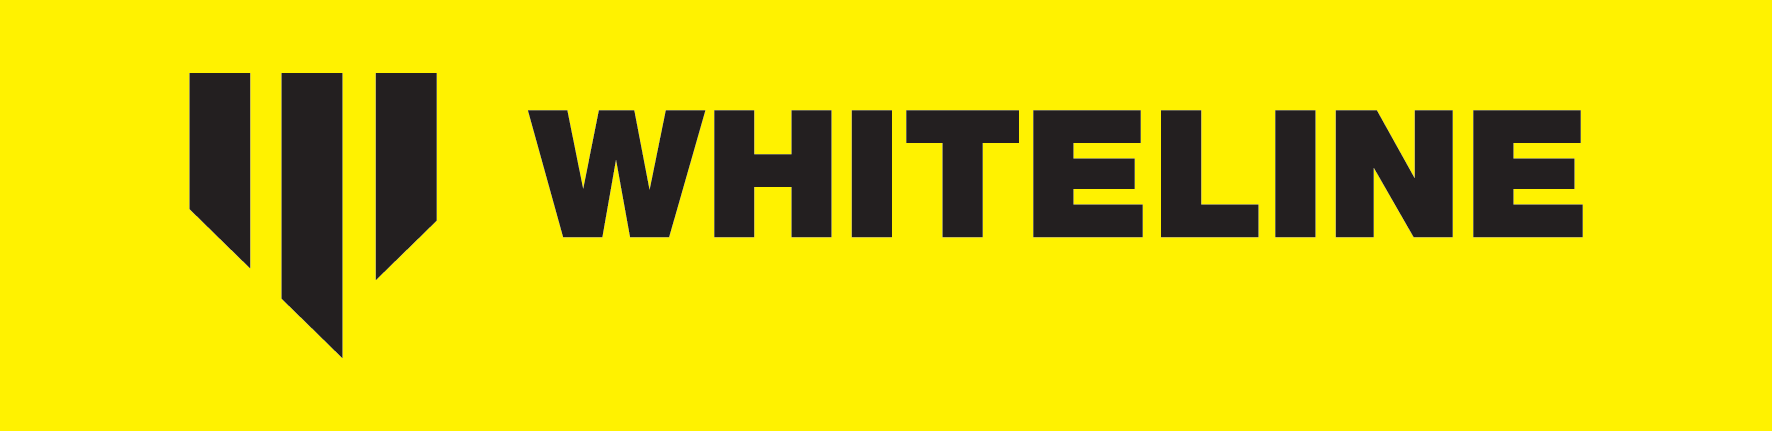 WH_logo_1_yellow.png